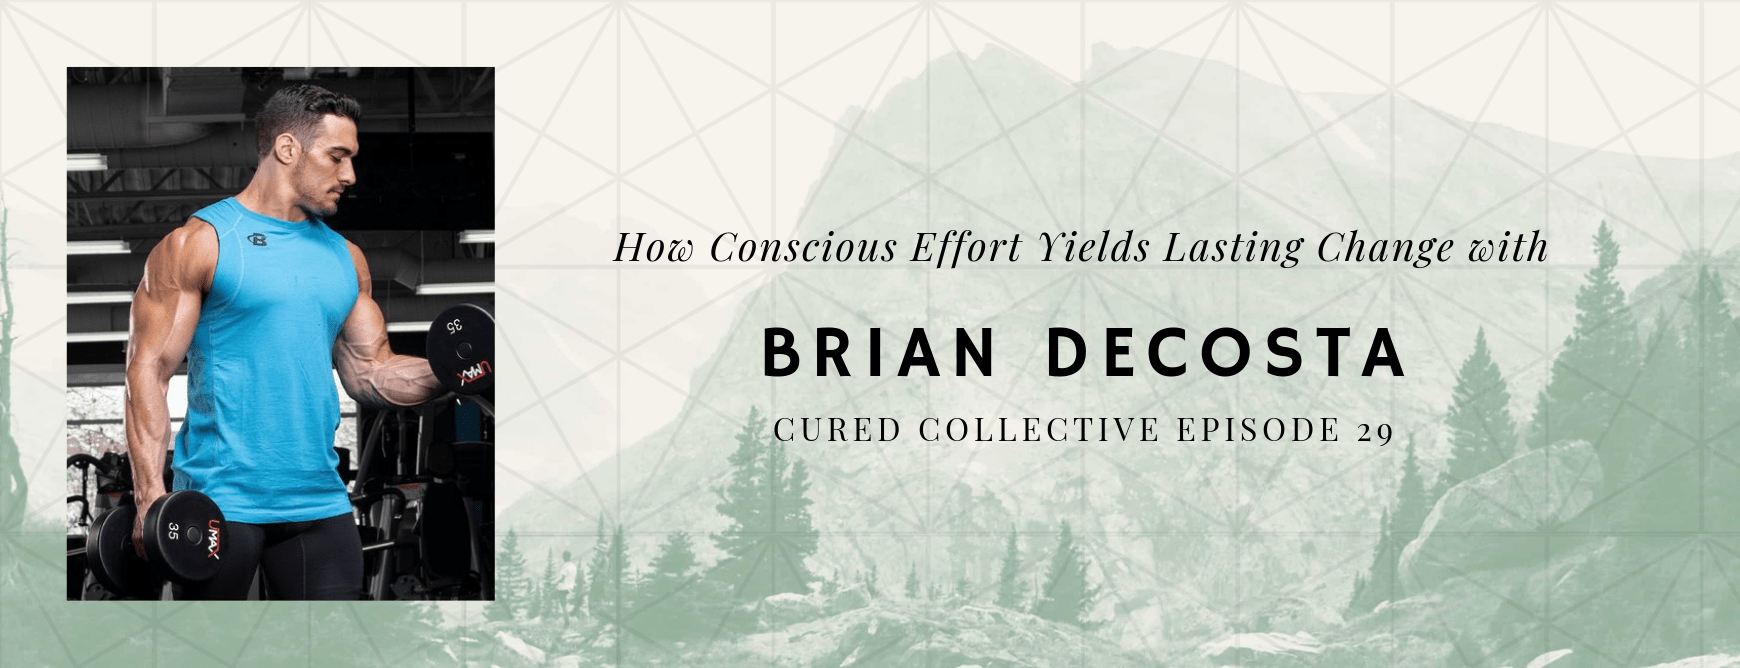 Brian DeCosta joins the Cured Collective Podcast